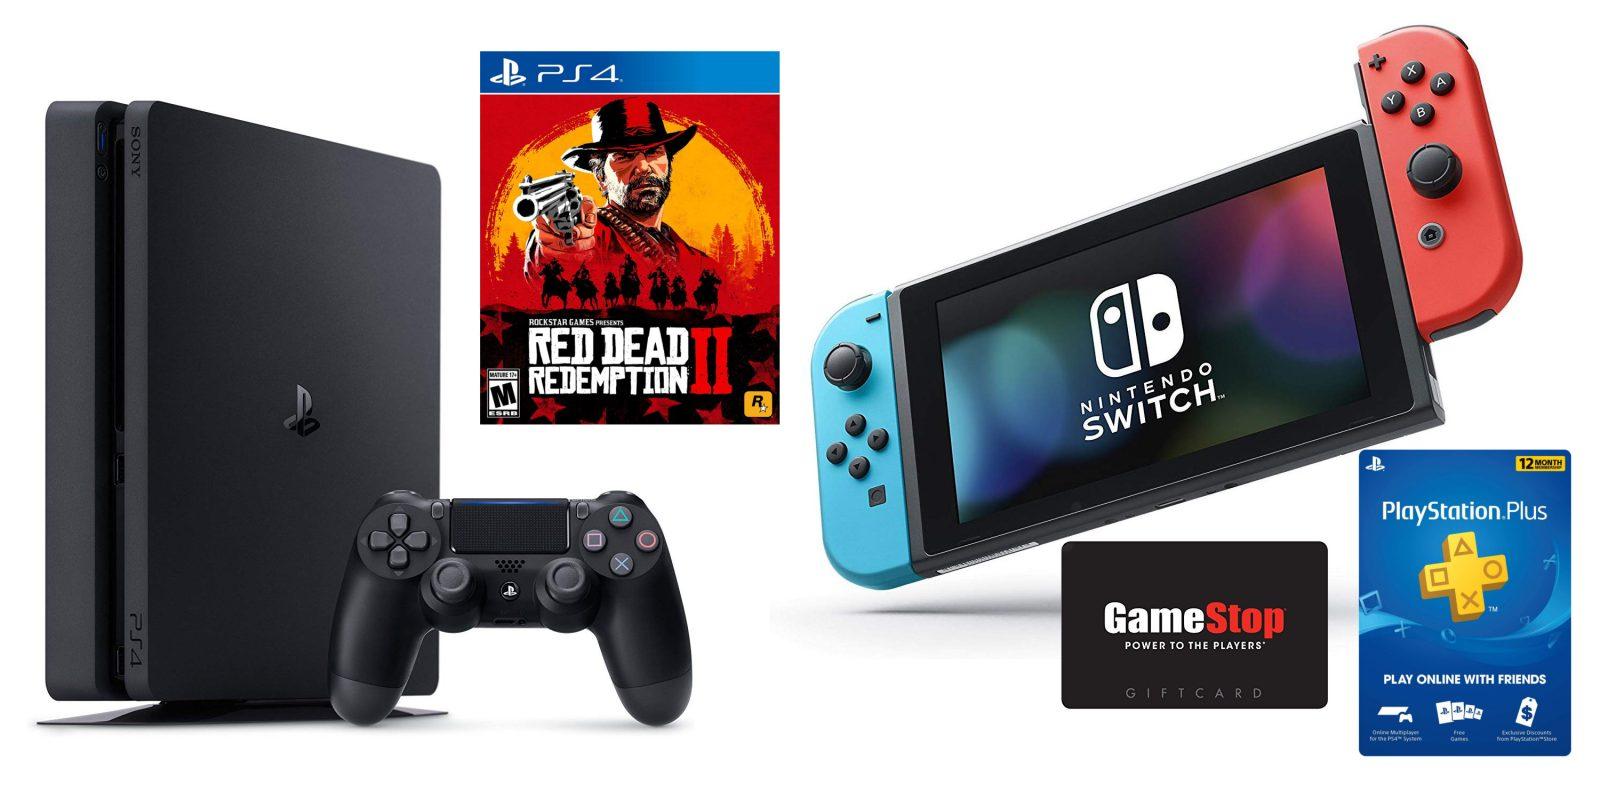 cyber monday game deals now live ps4 nintendo switch xbox one much more 9to5toys. Black Bedroom Furniture Sets. Home Design Ideas